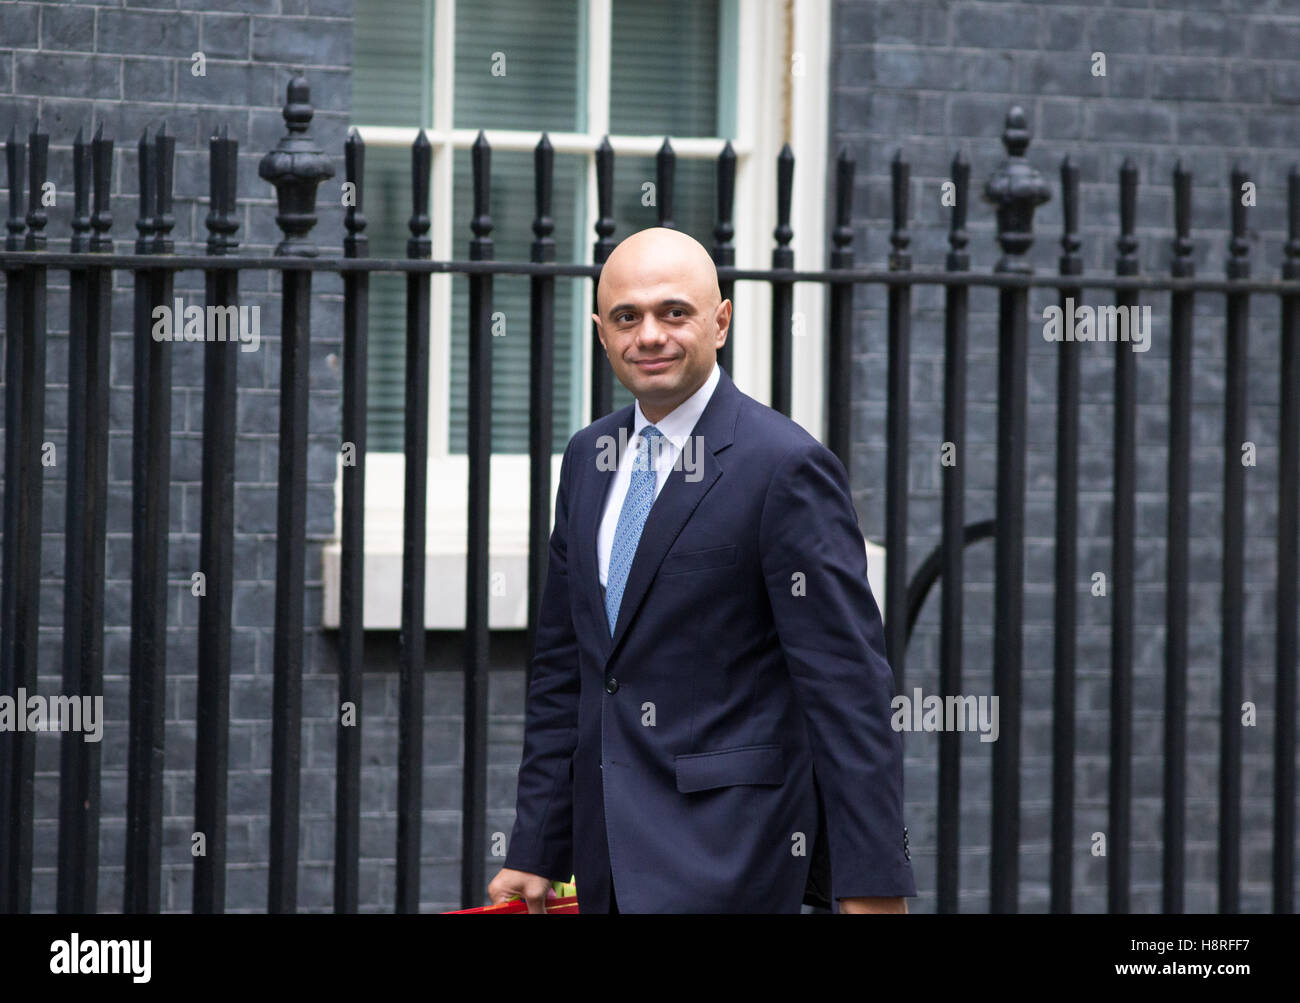 Sajid Javid,Secretary of State for Communities and Local Government,arrives at Downing street for a Cabinet meeting - Stock Image